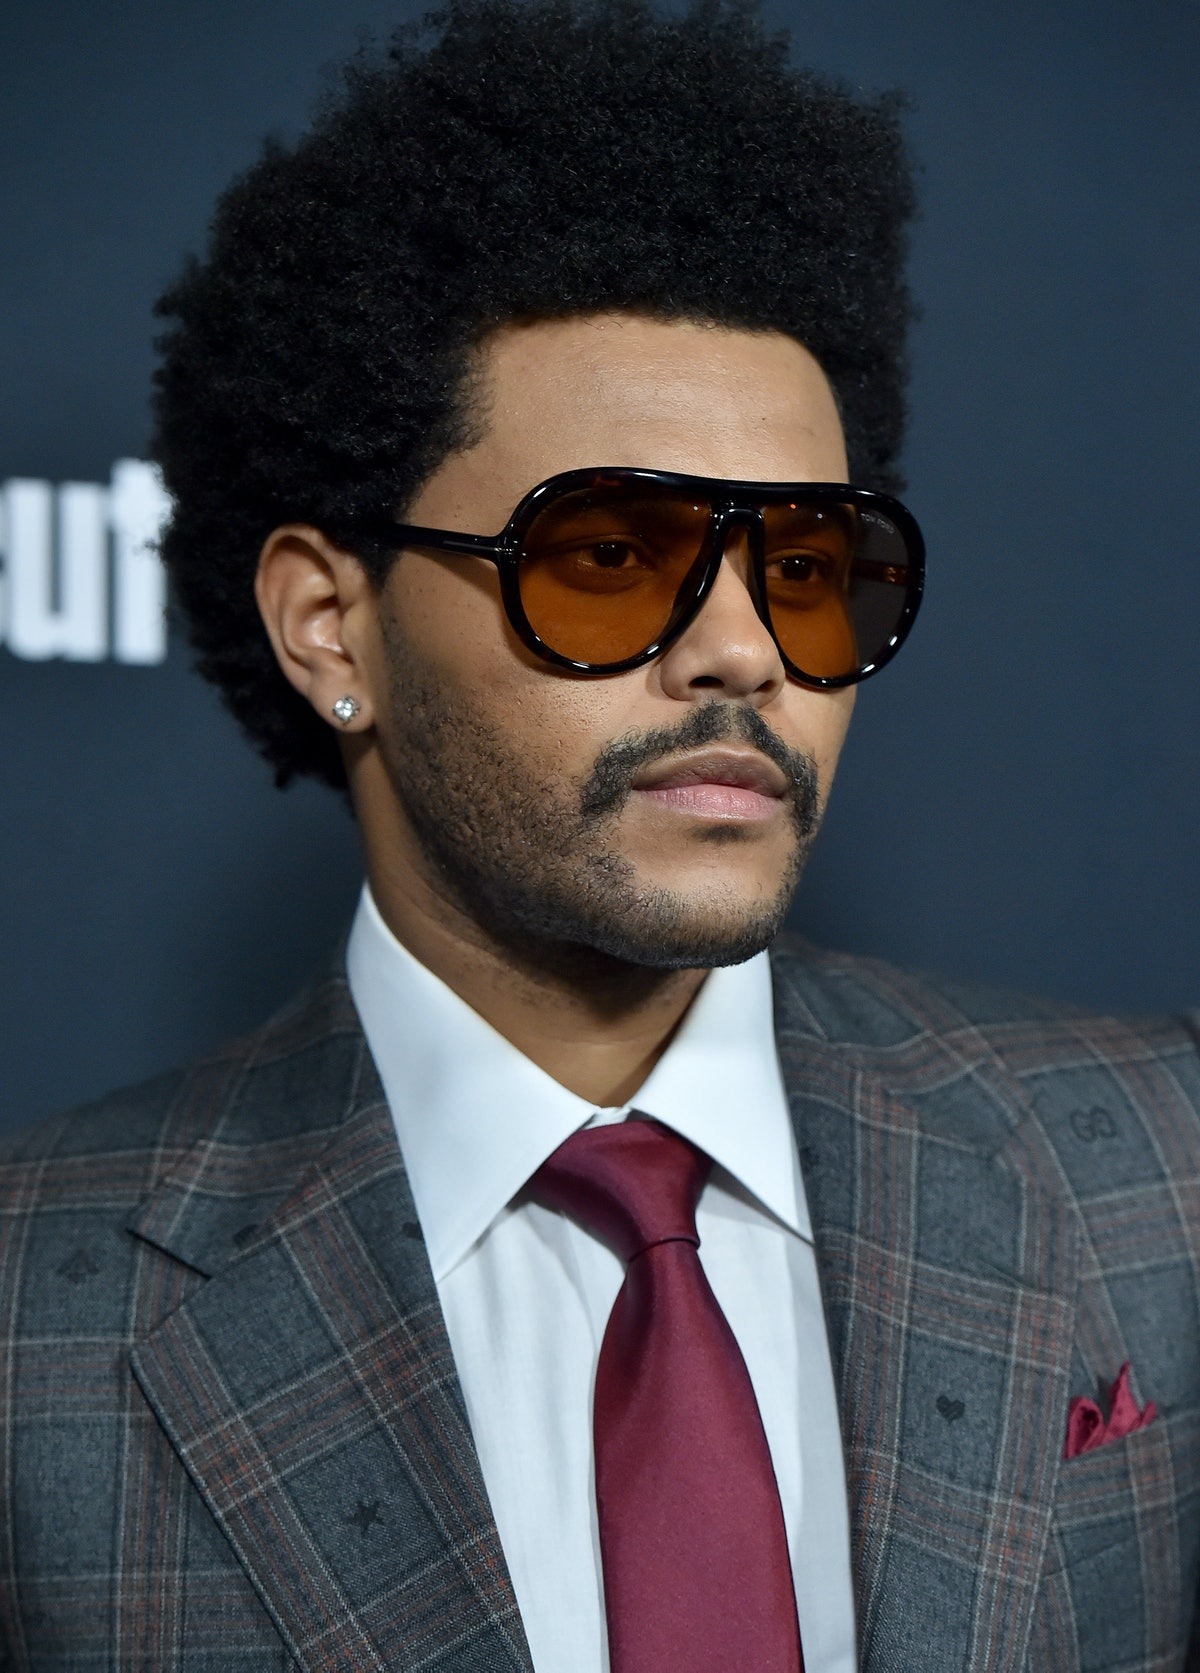 The Weeknd hits the red carpet wearing black sunglasses.